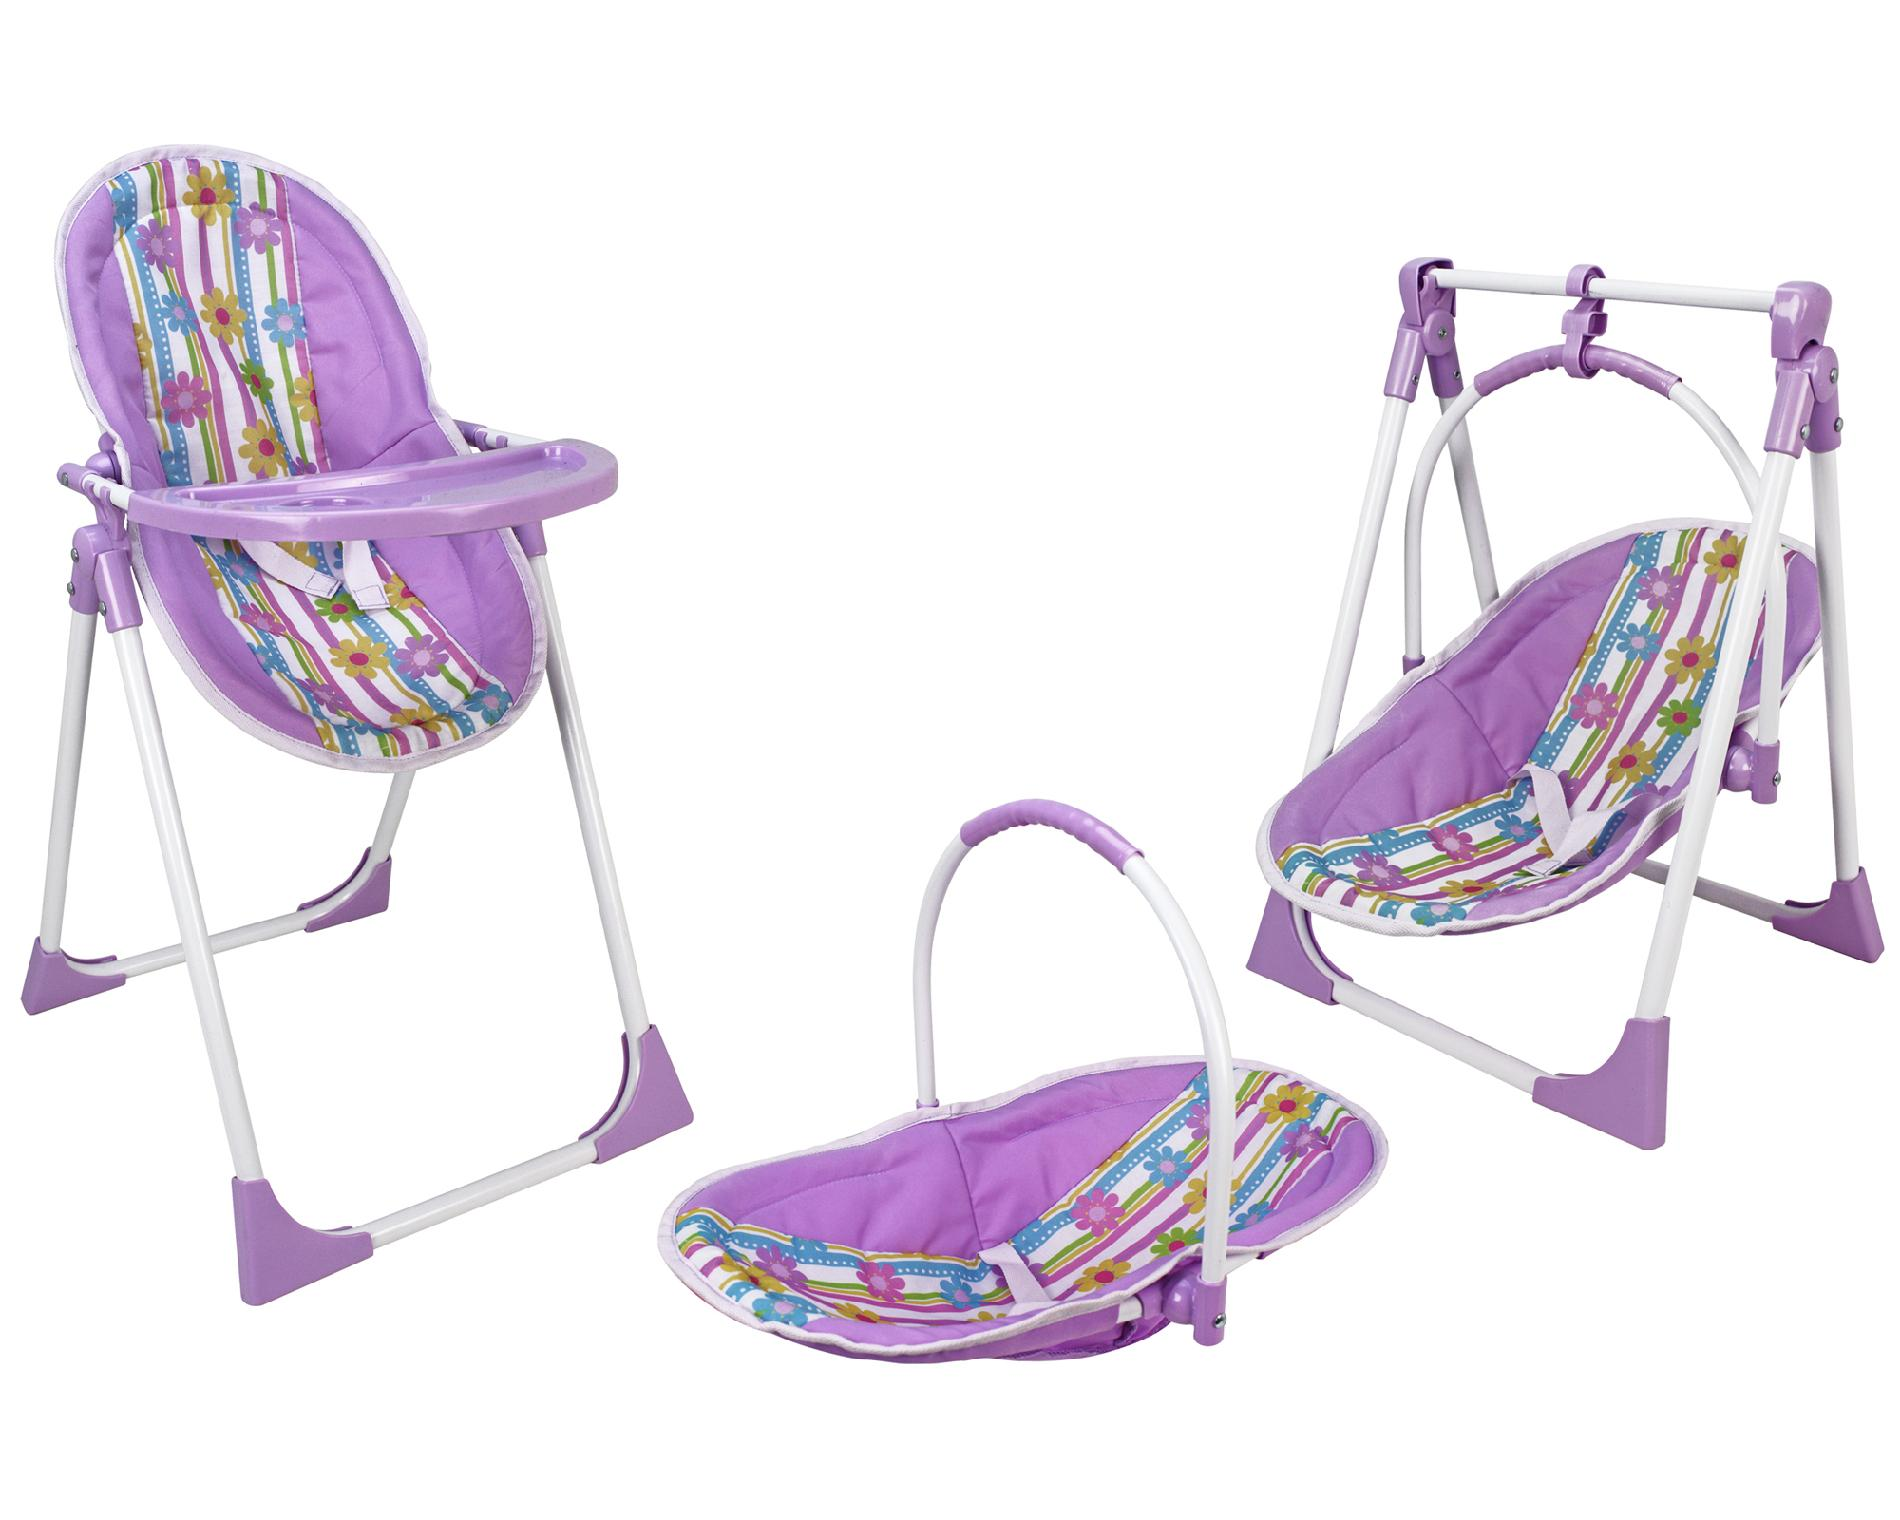 baby toy high chair set gmc yukon captains chairs leva 3 in 1 floral print doll toys games dolls accessories